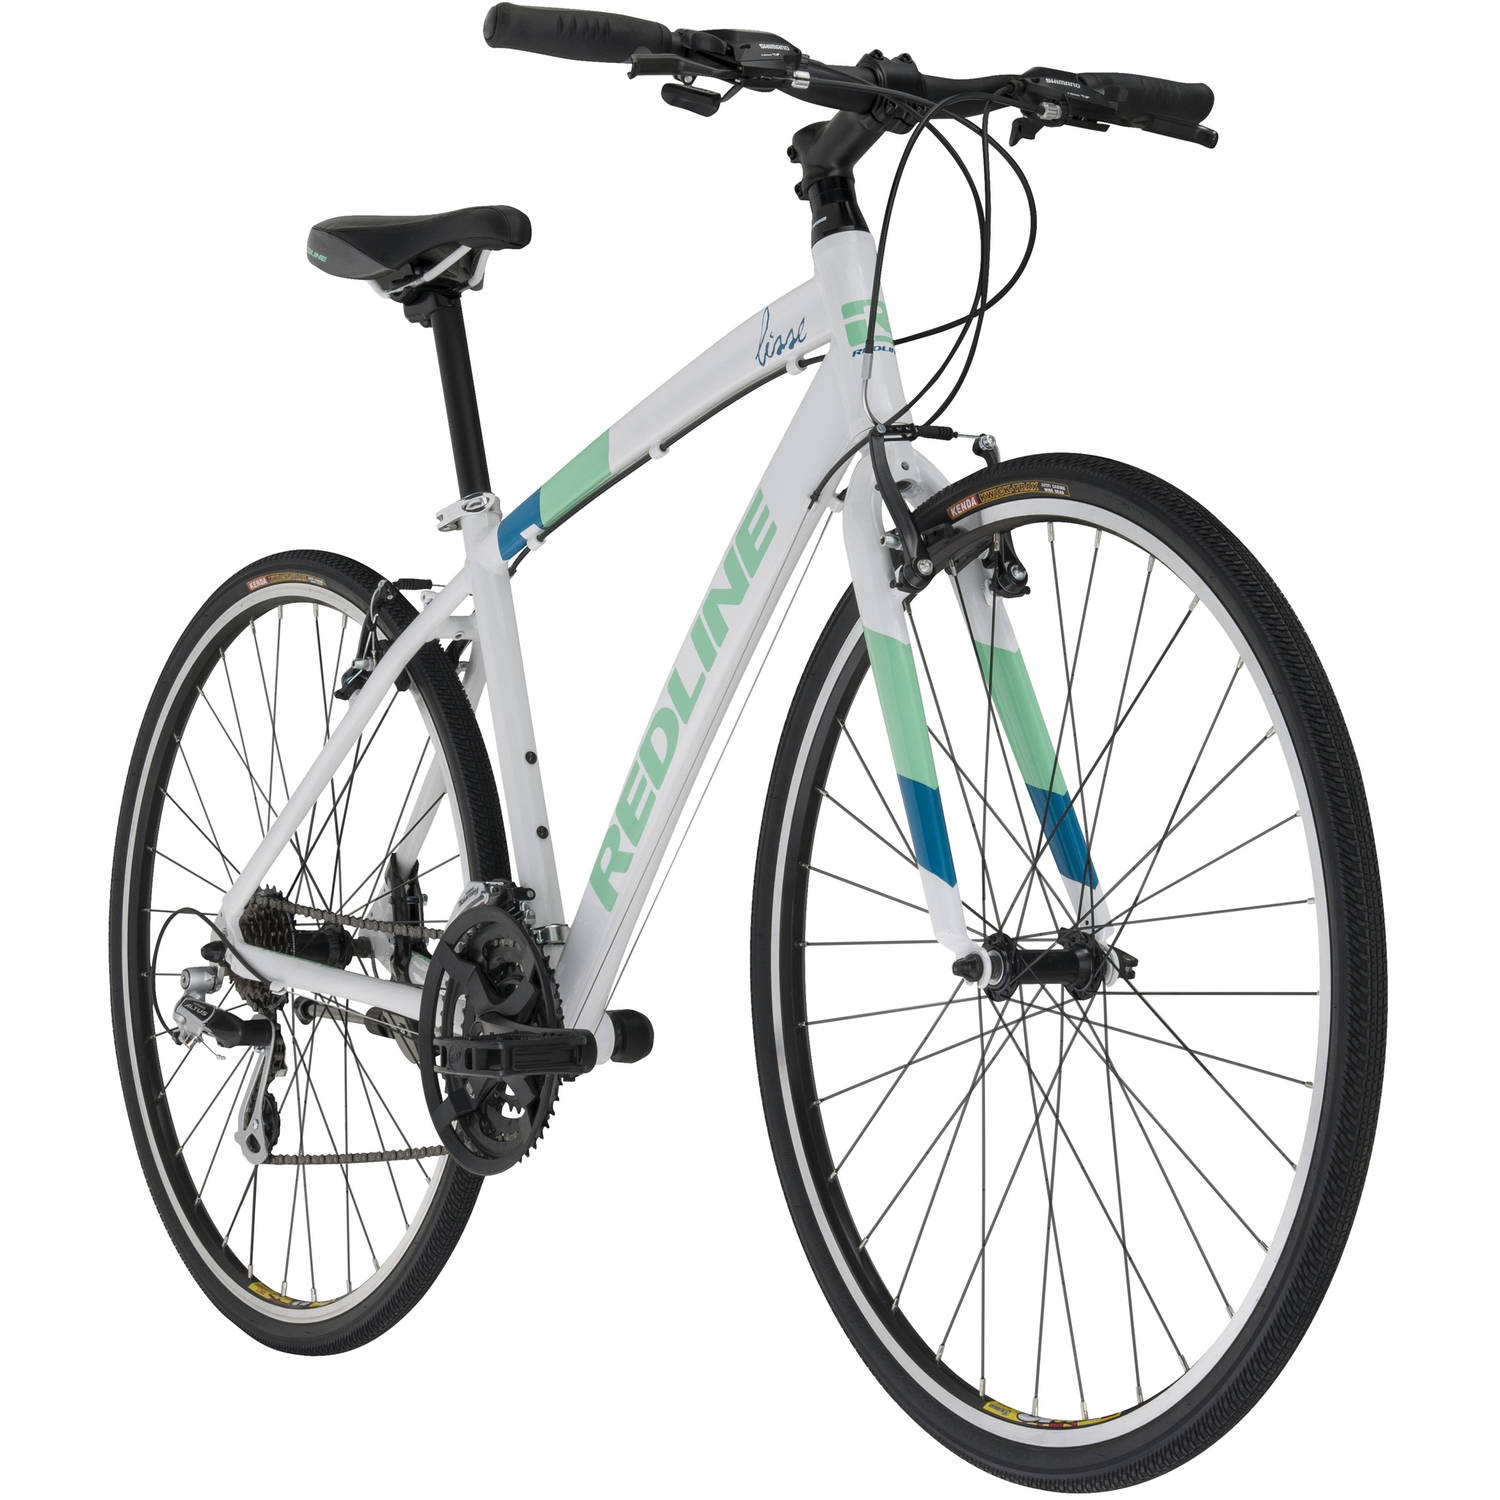 700c Redline Bikes Women's Lisse Performance Hybrid Road Bike, White